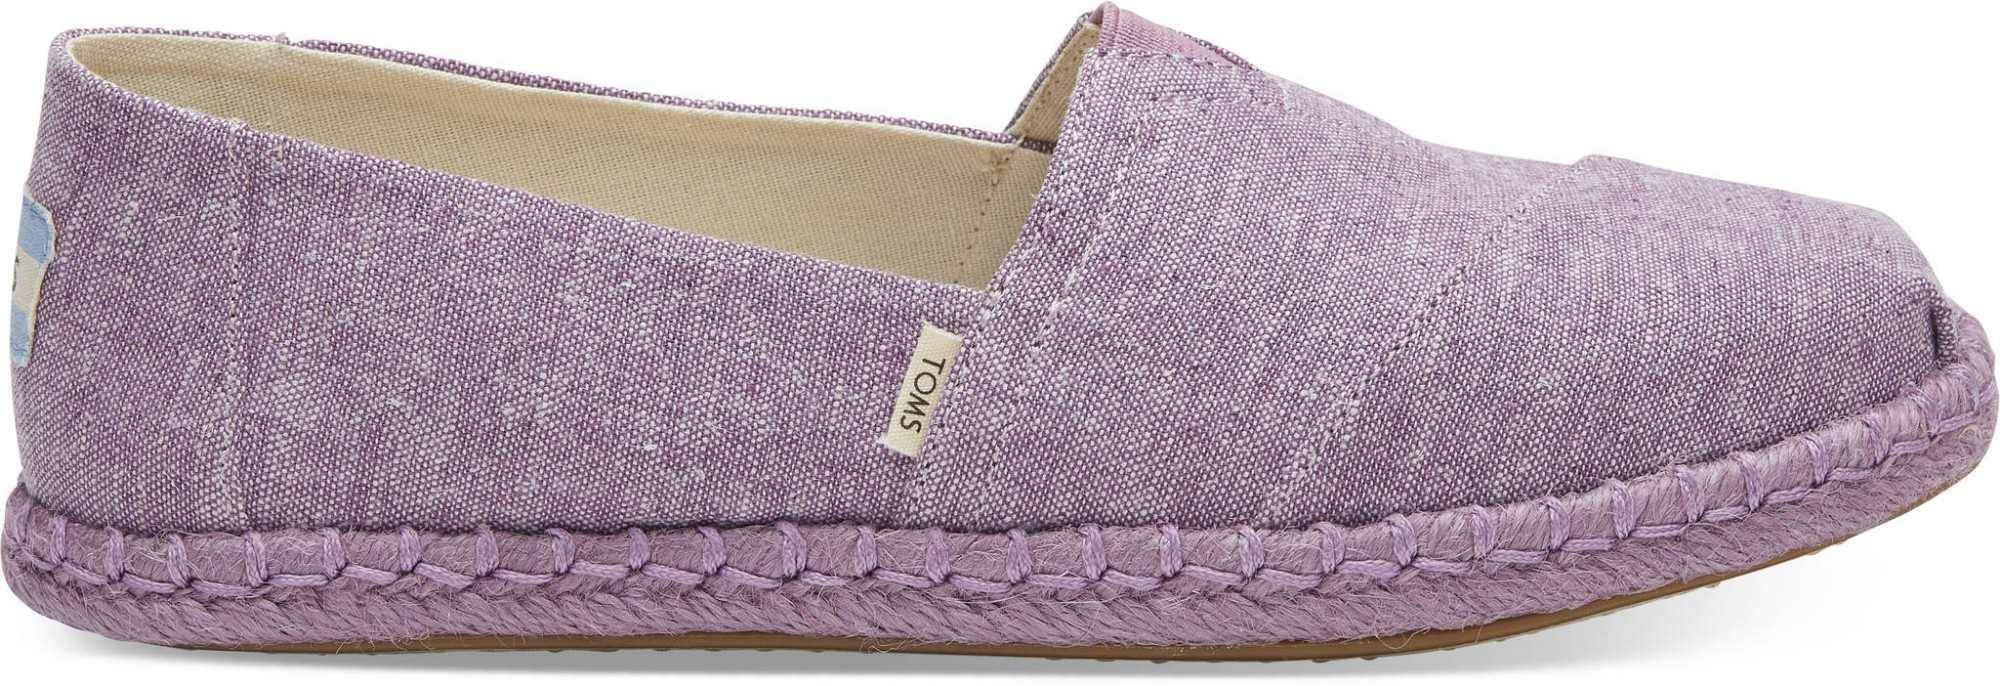 TOMS Chambray on Rope Women's Alpargata Rose Violet 38